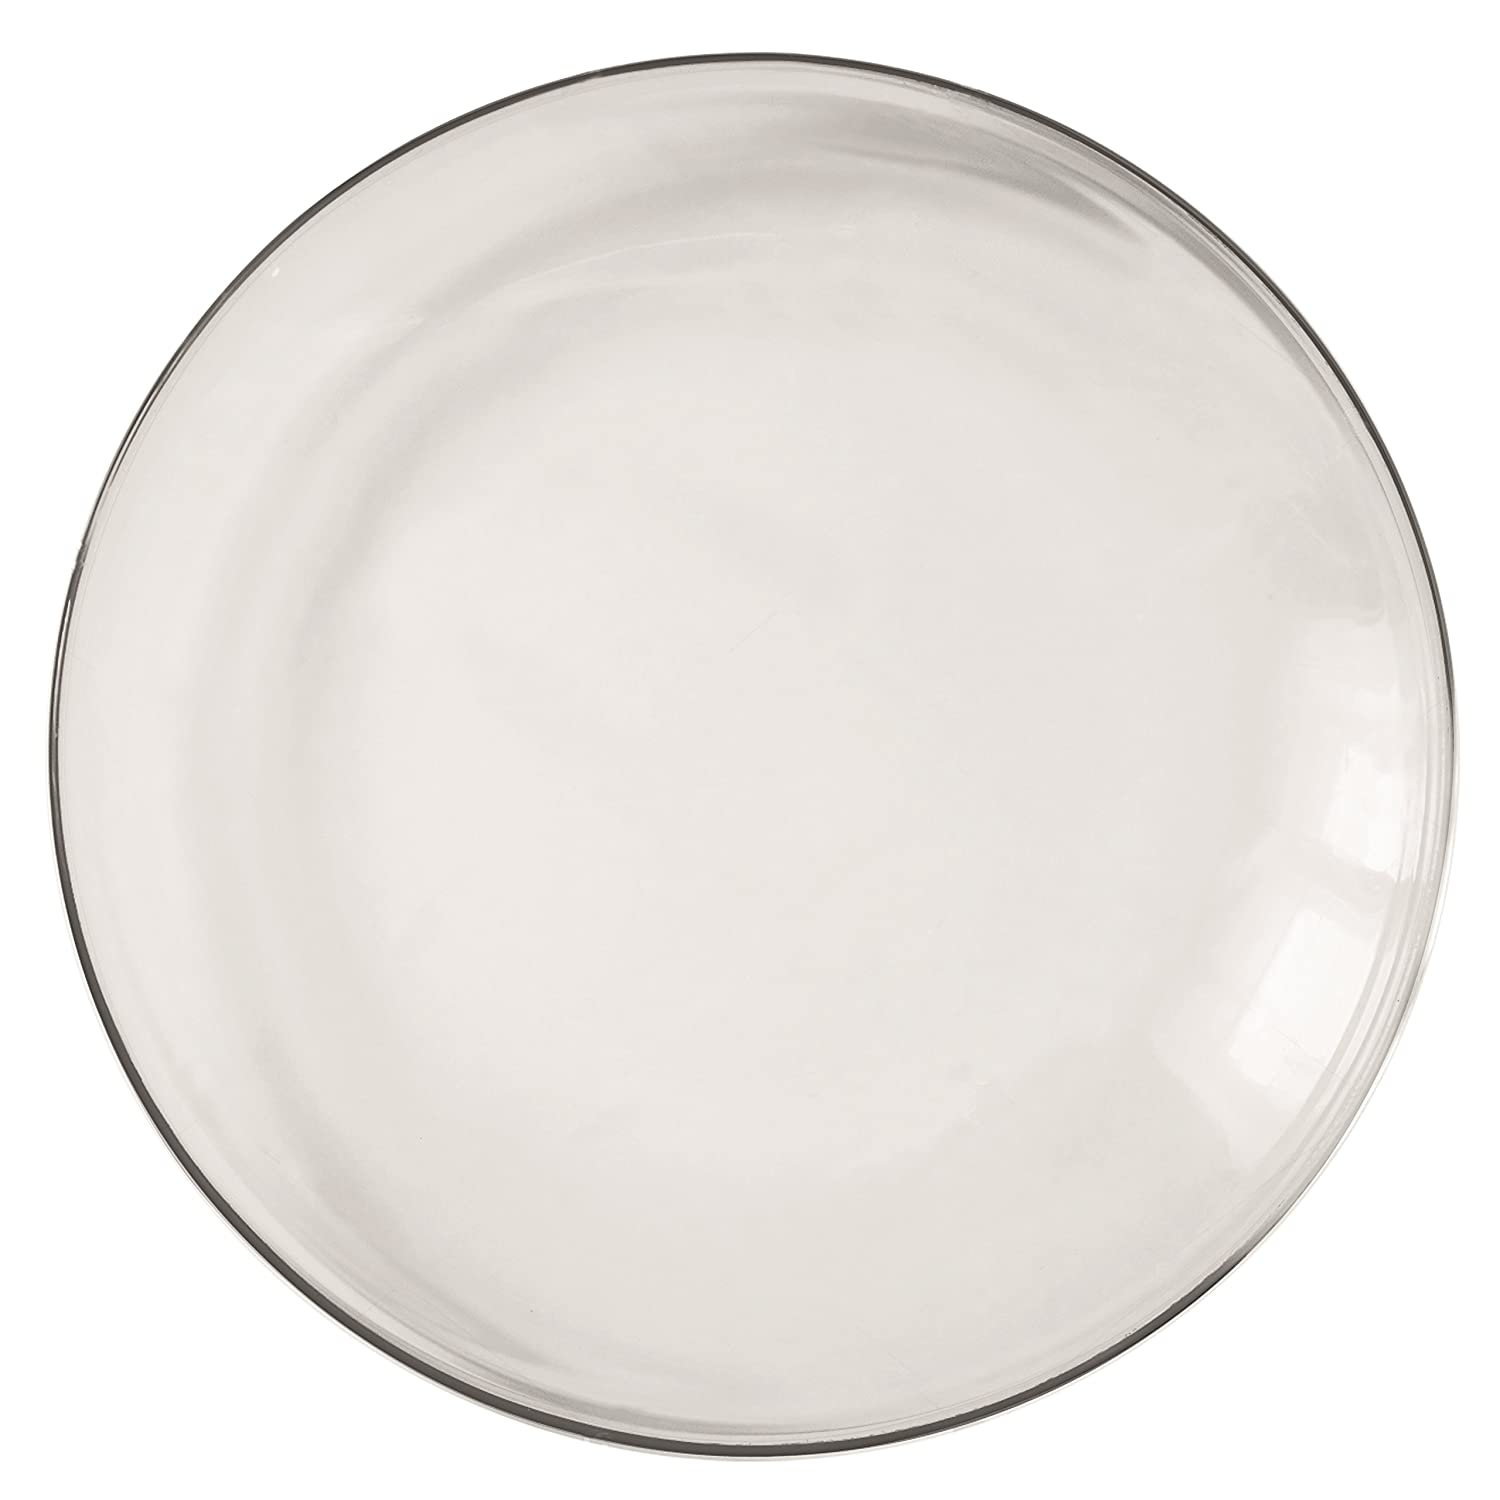 Barski - European Glass - Set of 2 - Clear - Charger - Plate - 13